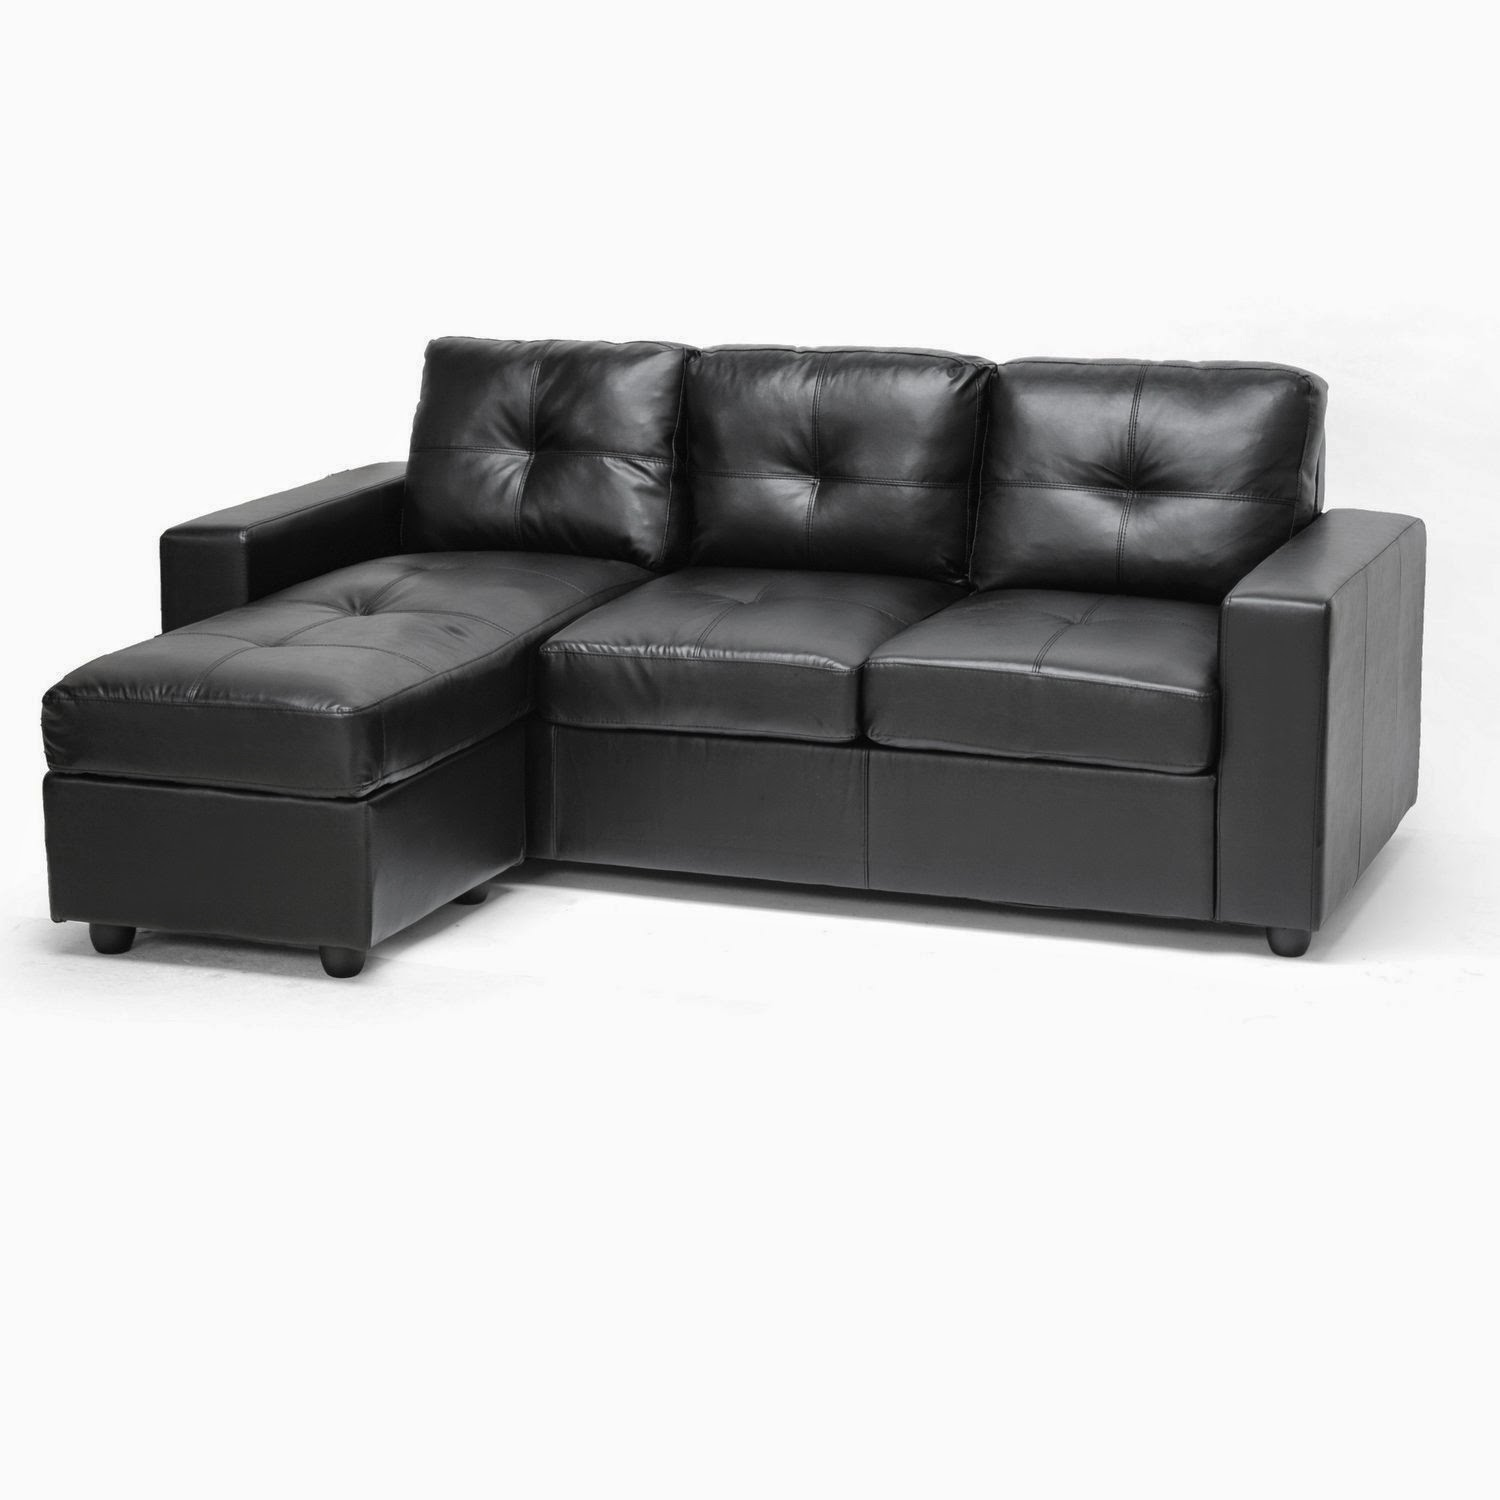 Black leather couch for Cheap black couch set